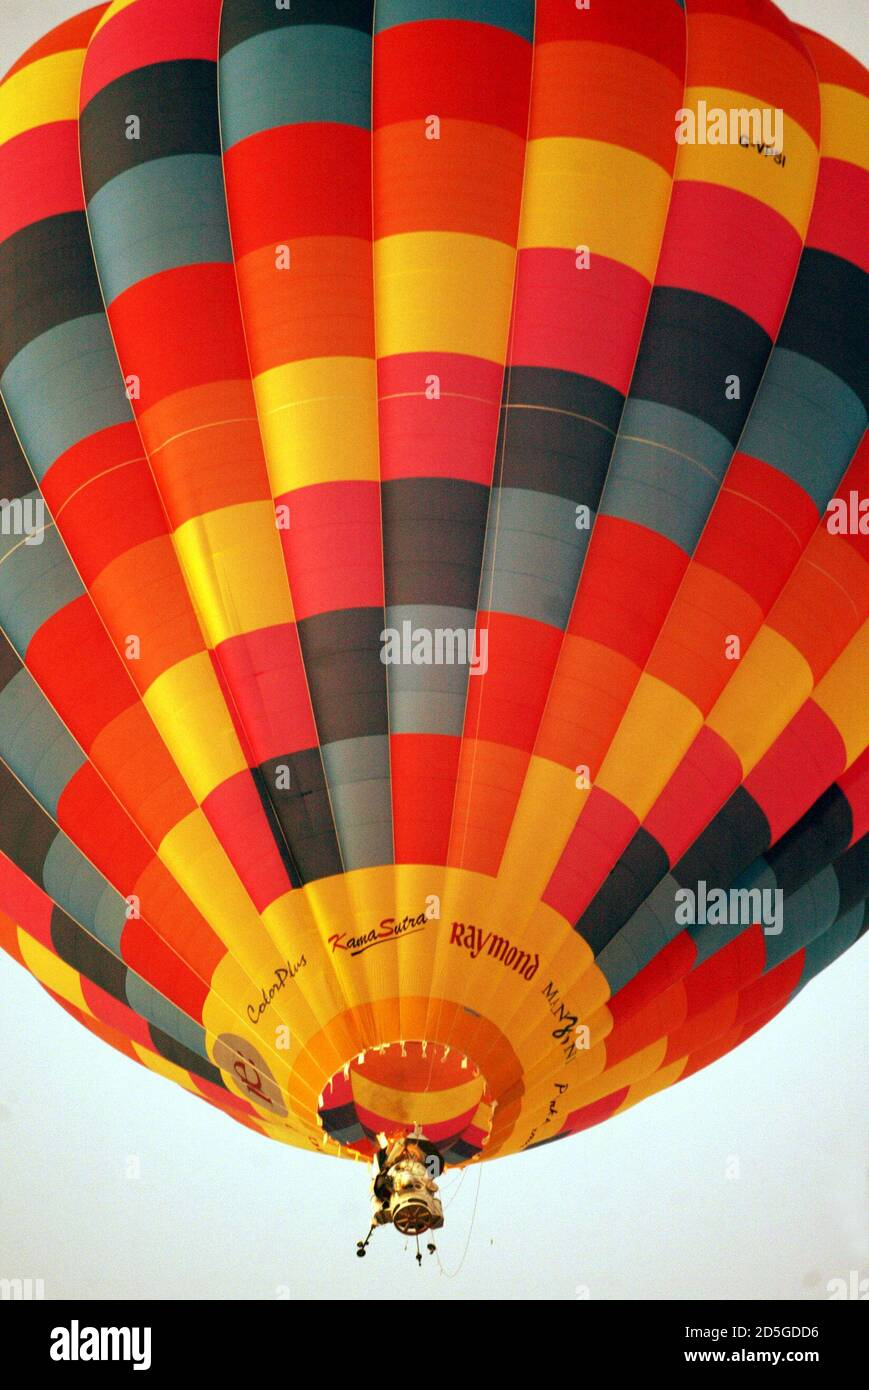 """Industrialist Vijaypat Singhania's hot air balloon takes off in Mumbai November 26, 2005. Singhania took off in his hot air balloon capsule in an effort to reach a height of 70,000 feet (above 21,336 meters) above sea level on Saturday, part of an attempt to break the existing world record set for """"High altitude in hot air balloon."""" The current record is held by Per Lindstrand, who reached a height of 64,997 feet (19,811 meters) in Plano, Texas, on June 6, 1988. REUTERS/Punit Paranjpe Foto de stock"""